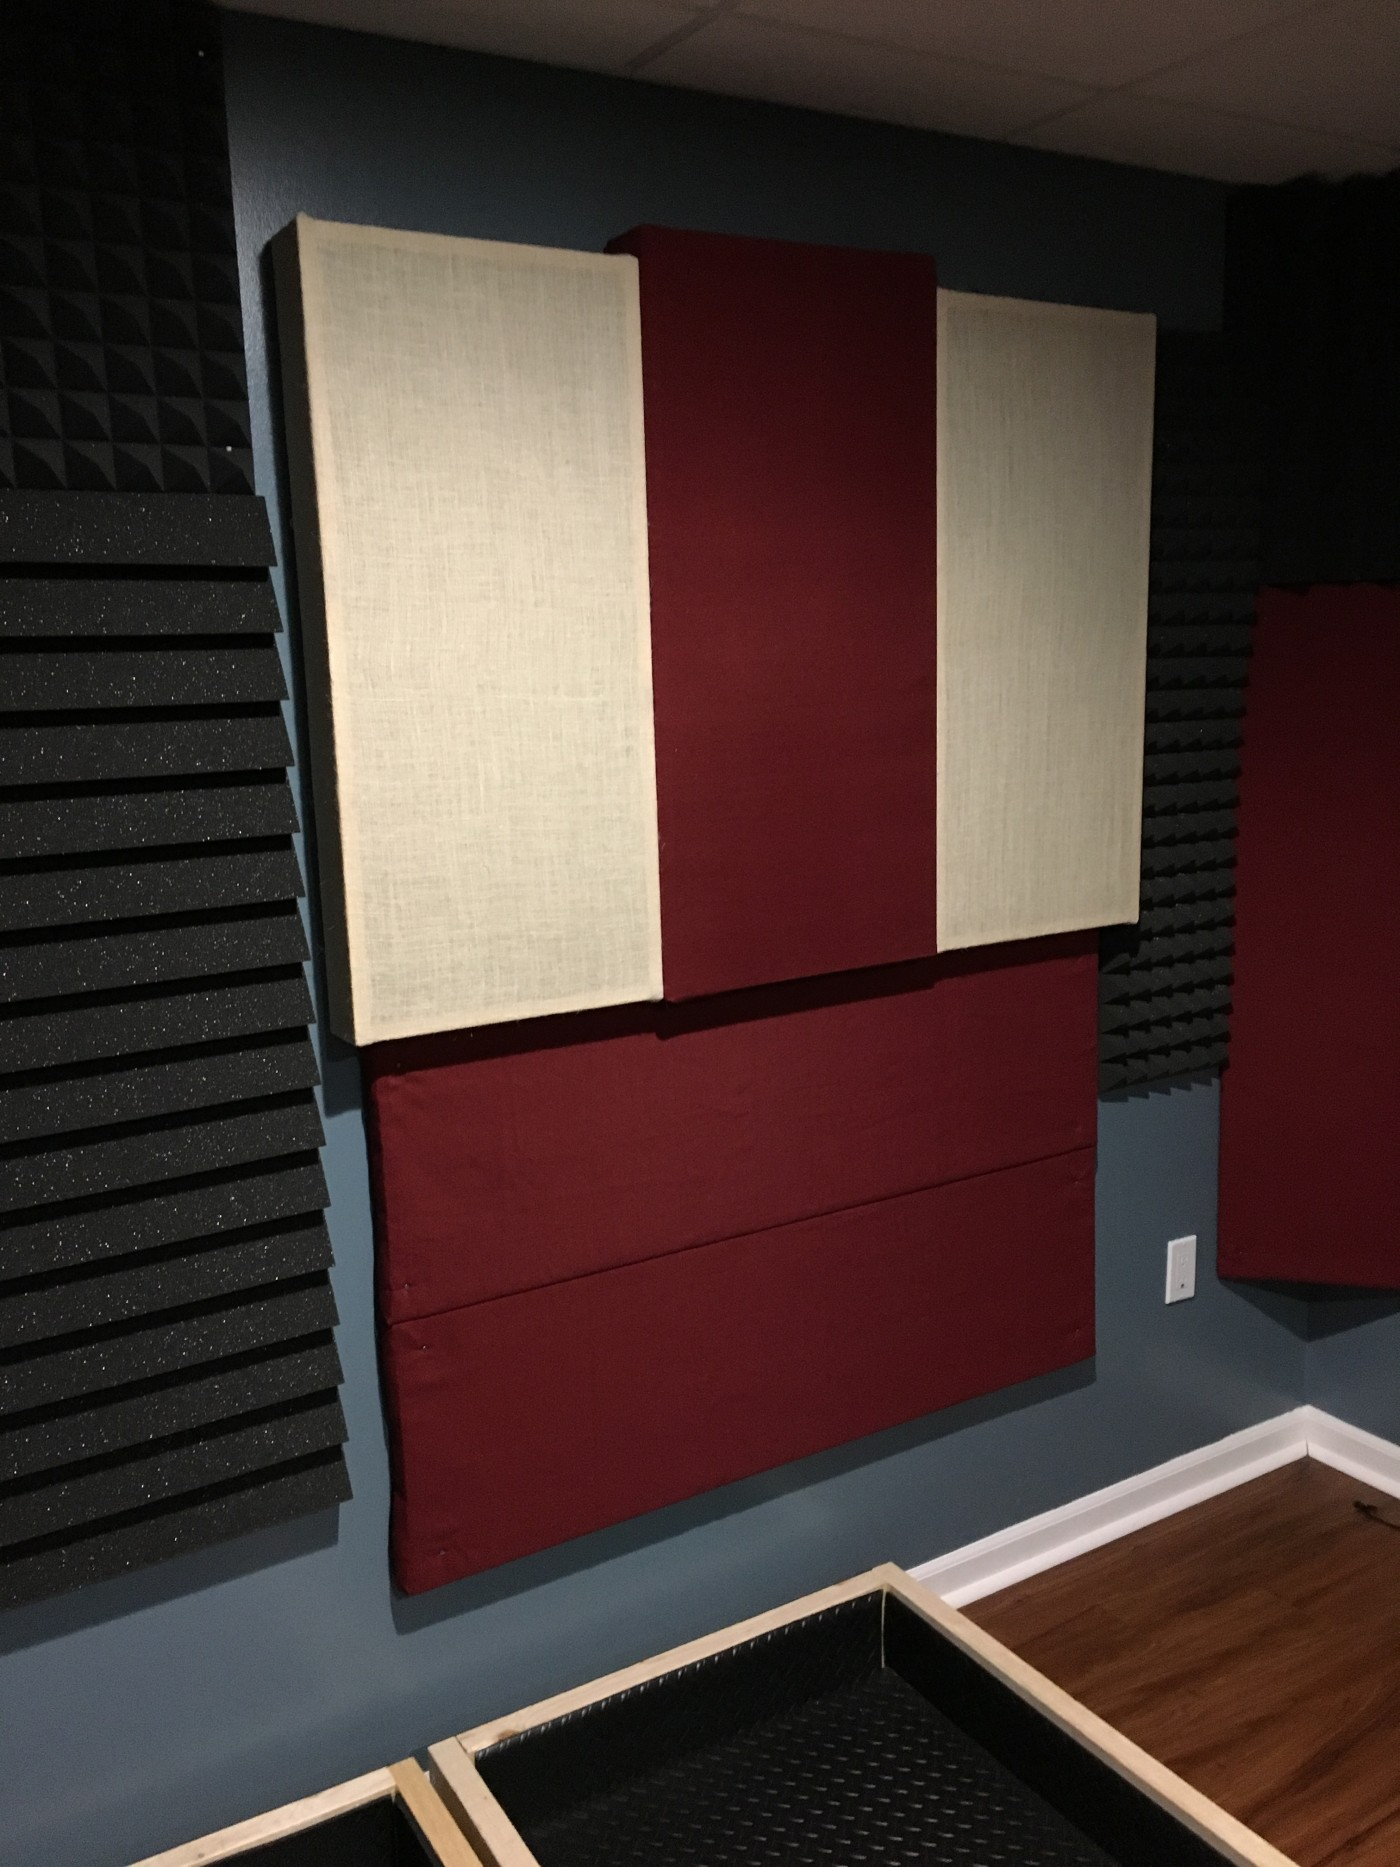 Medium, hand-made acoustic panels. Wood frame, rockwool insulation, wrapped in acoustic-grade burlap.